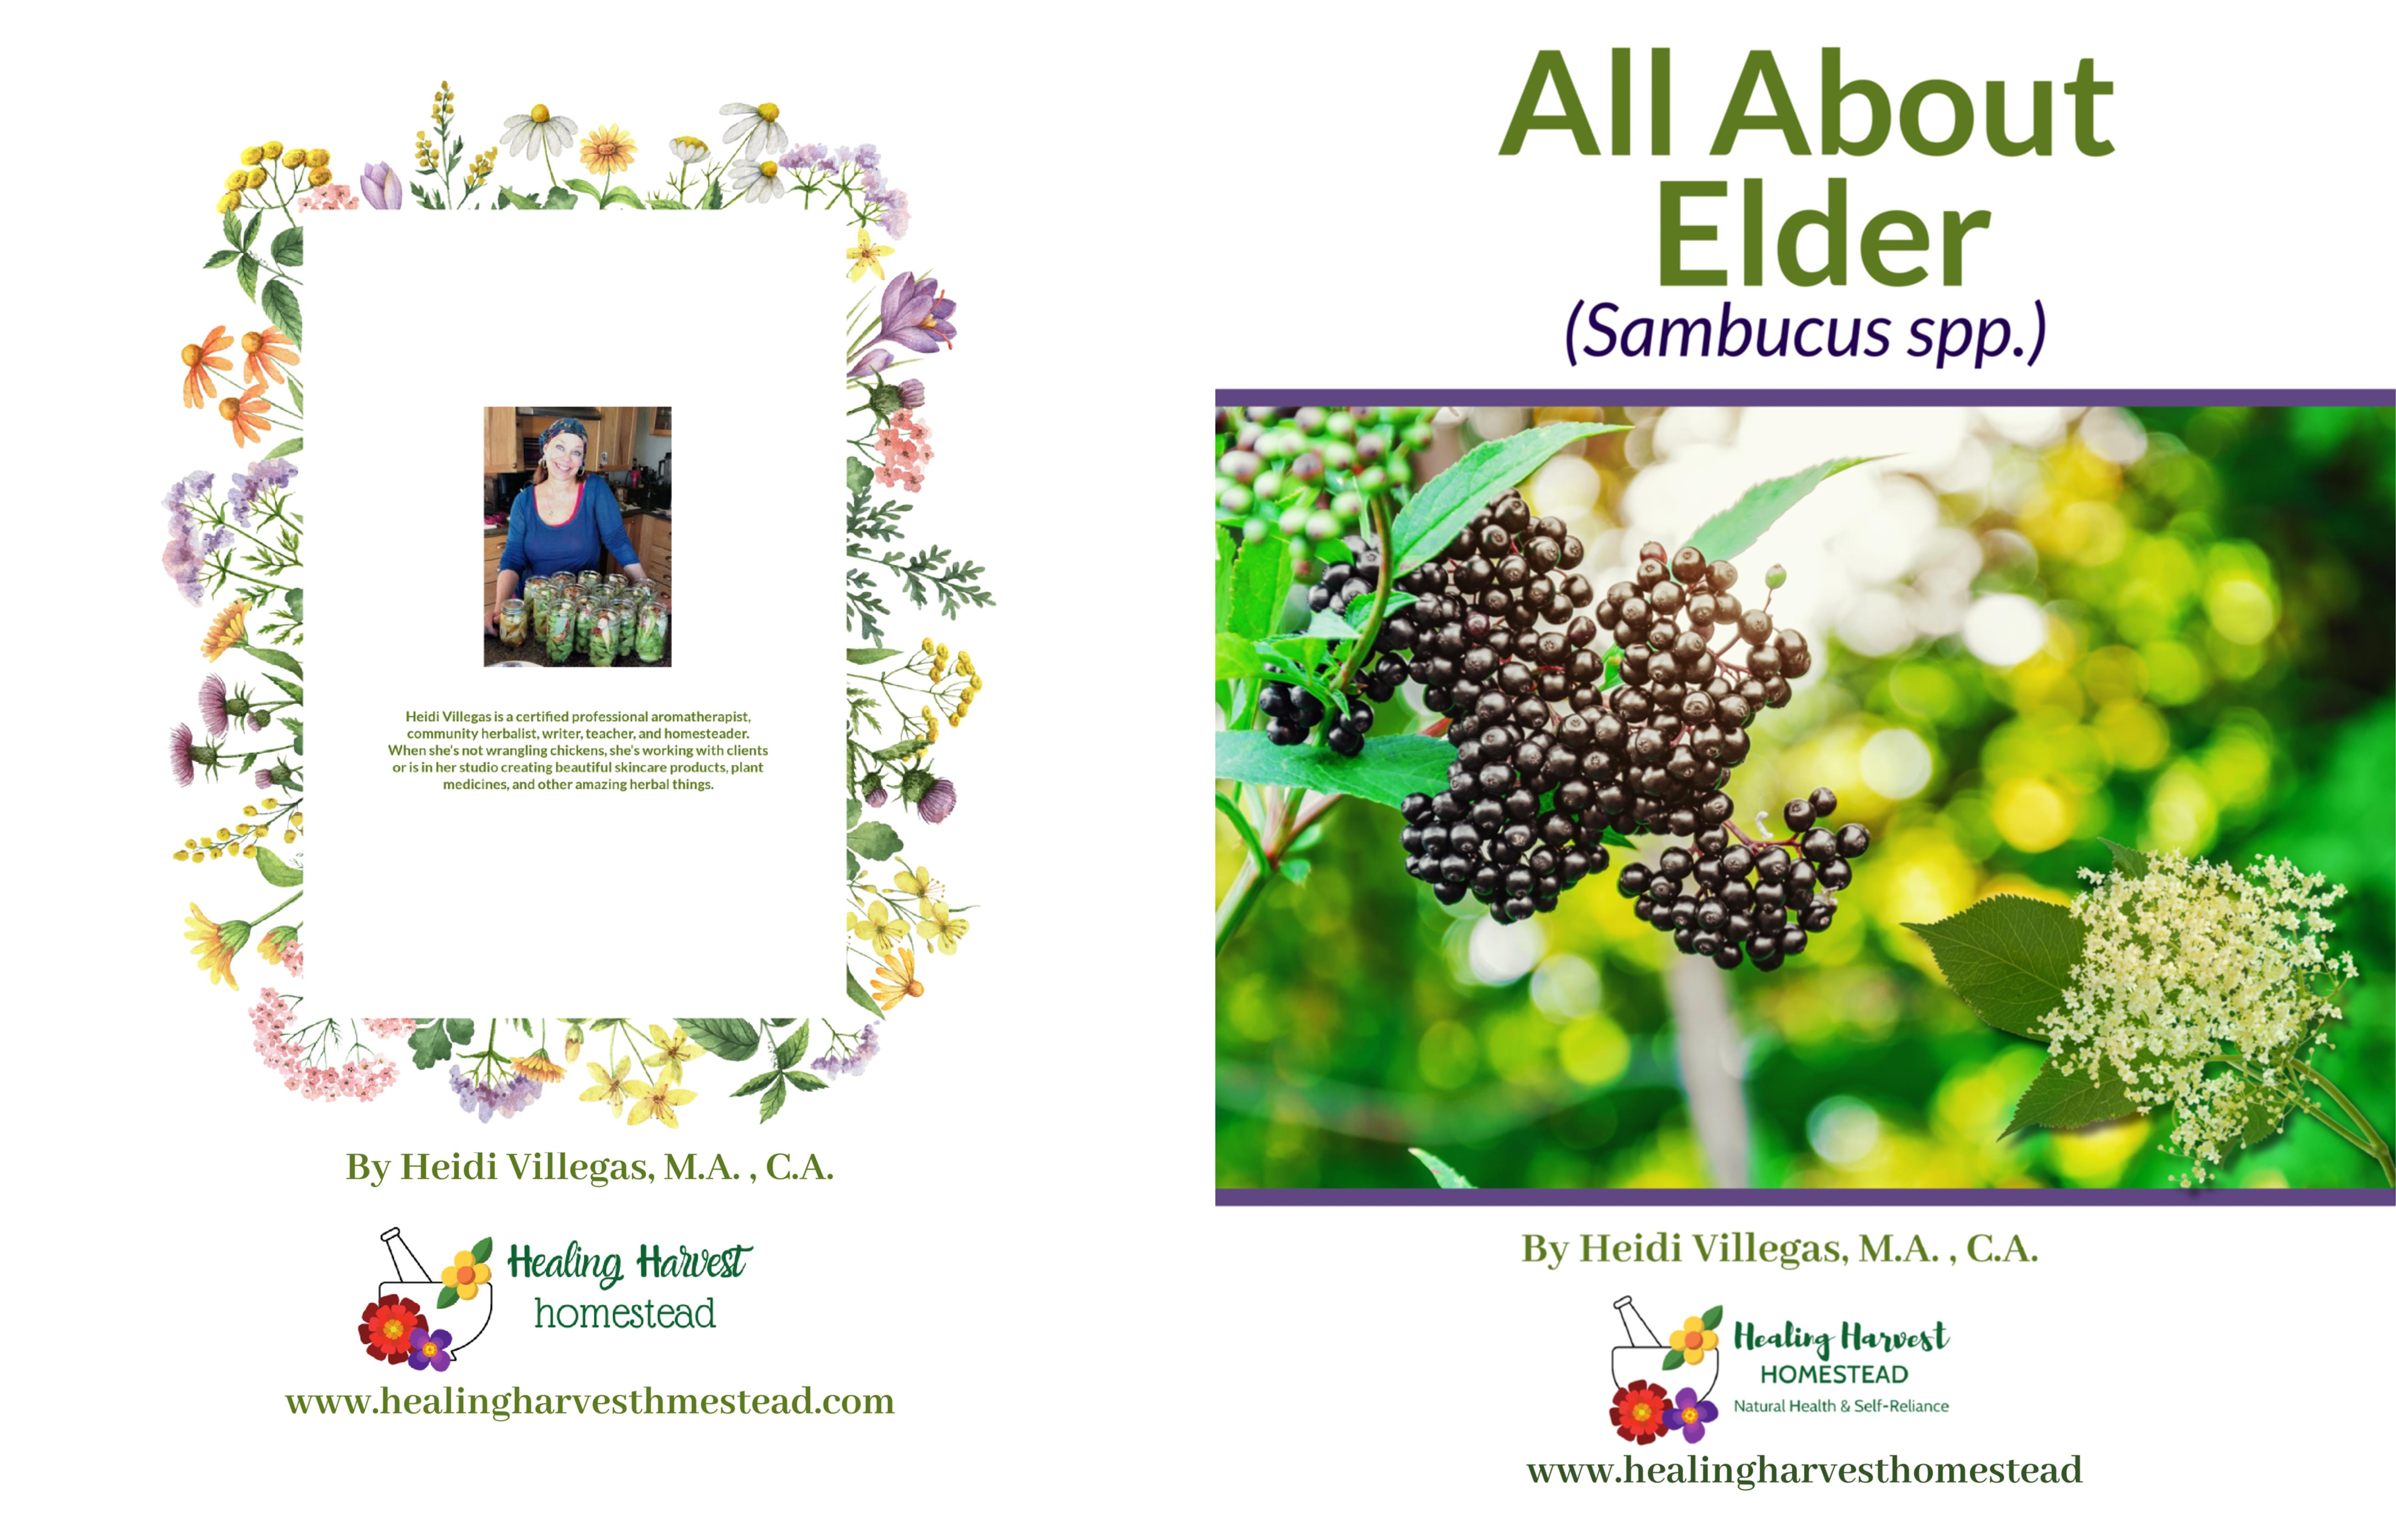 All About Elder cover image